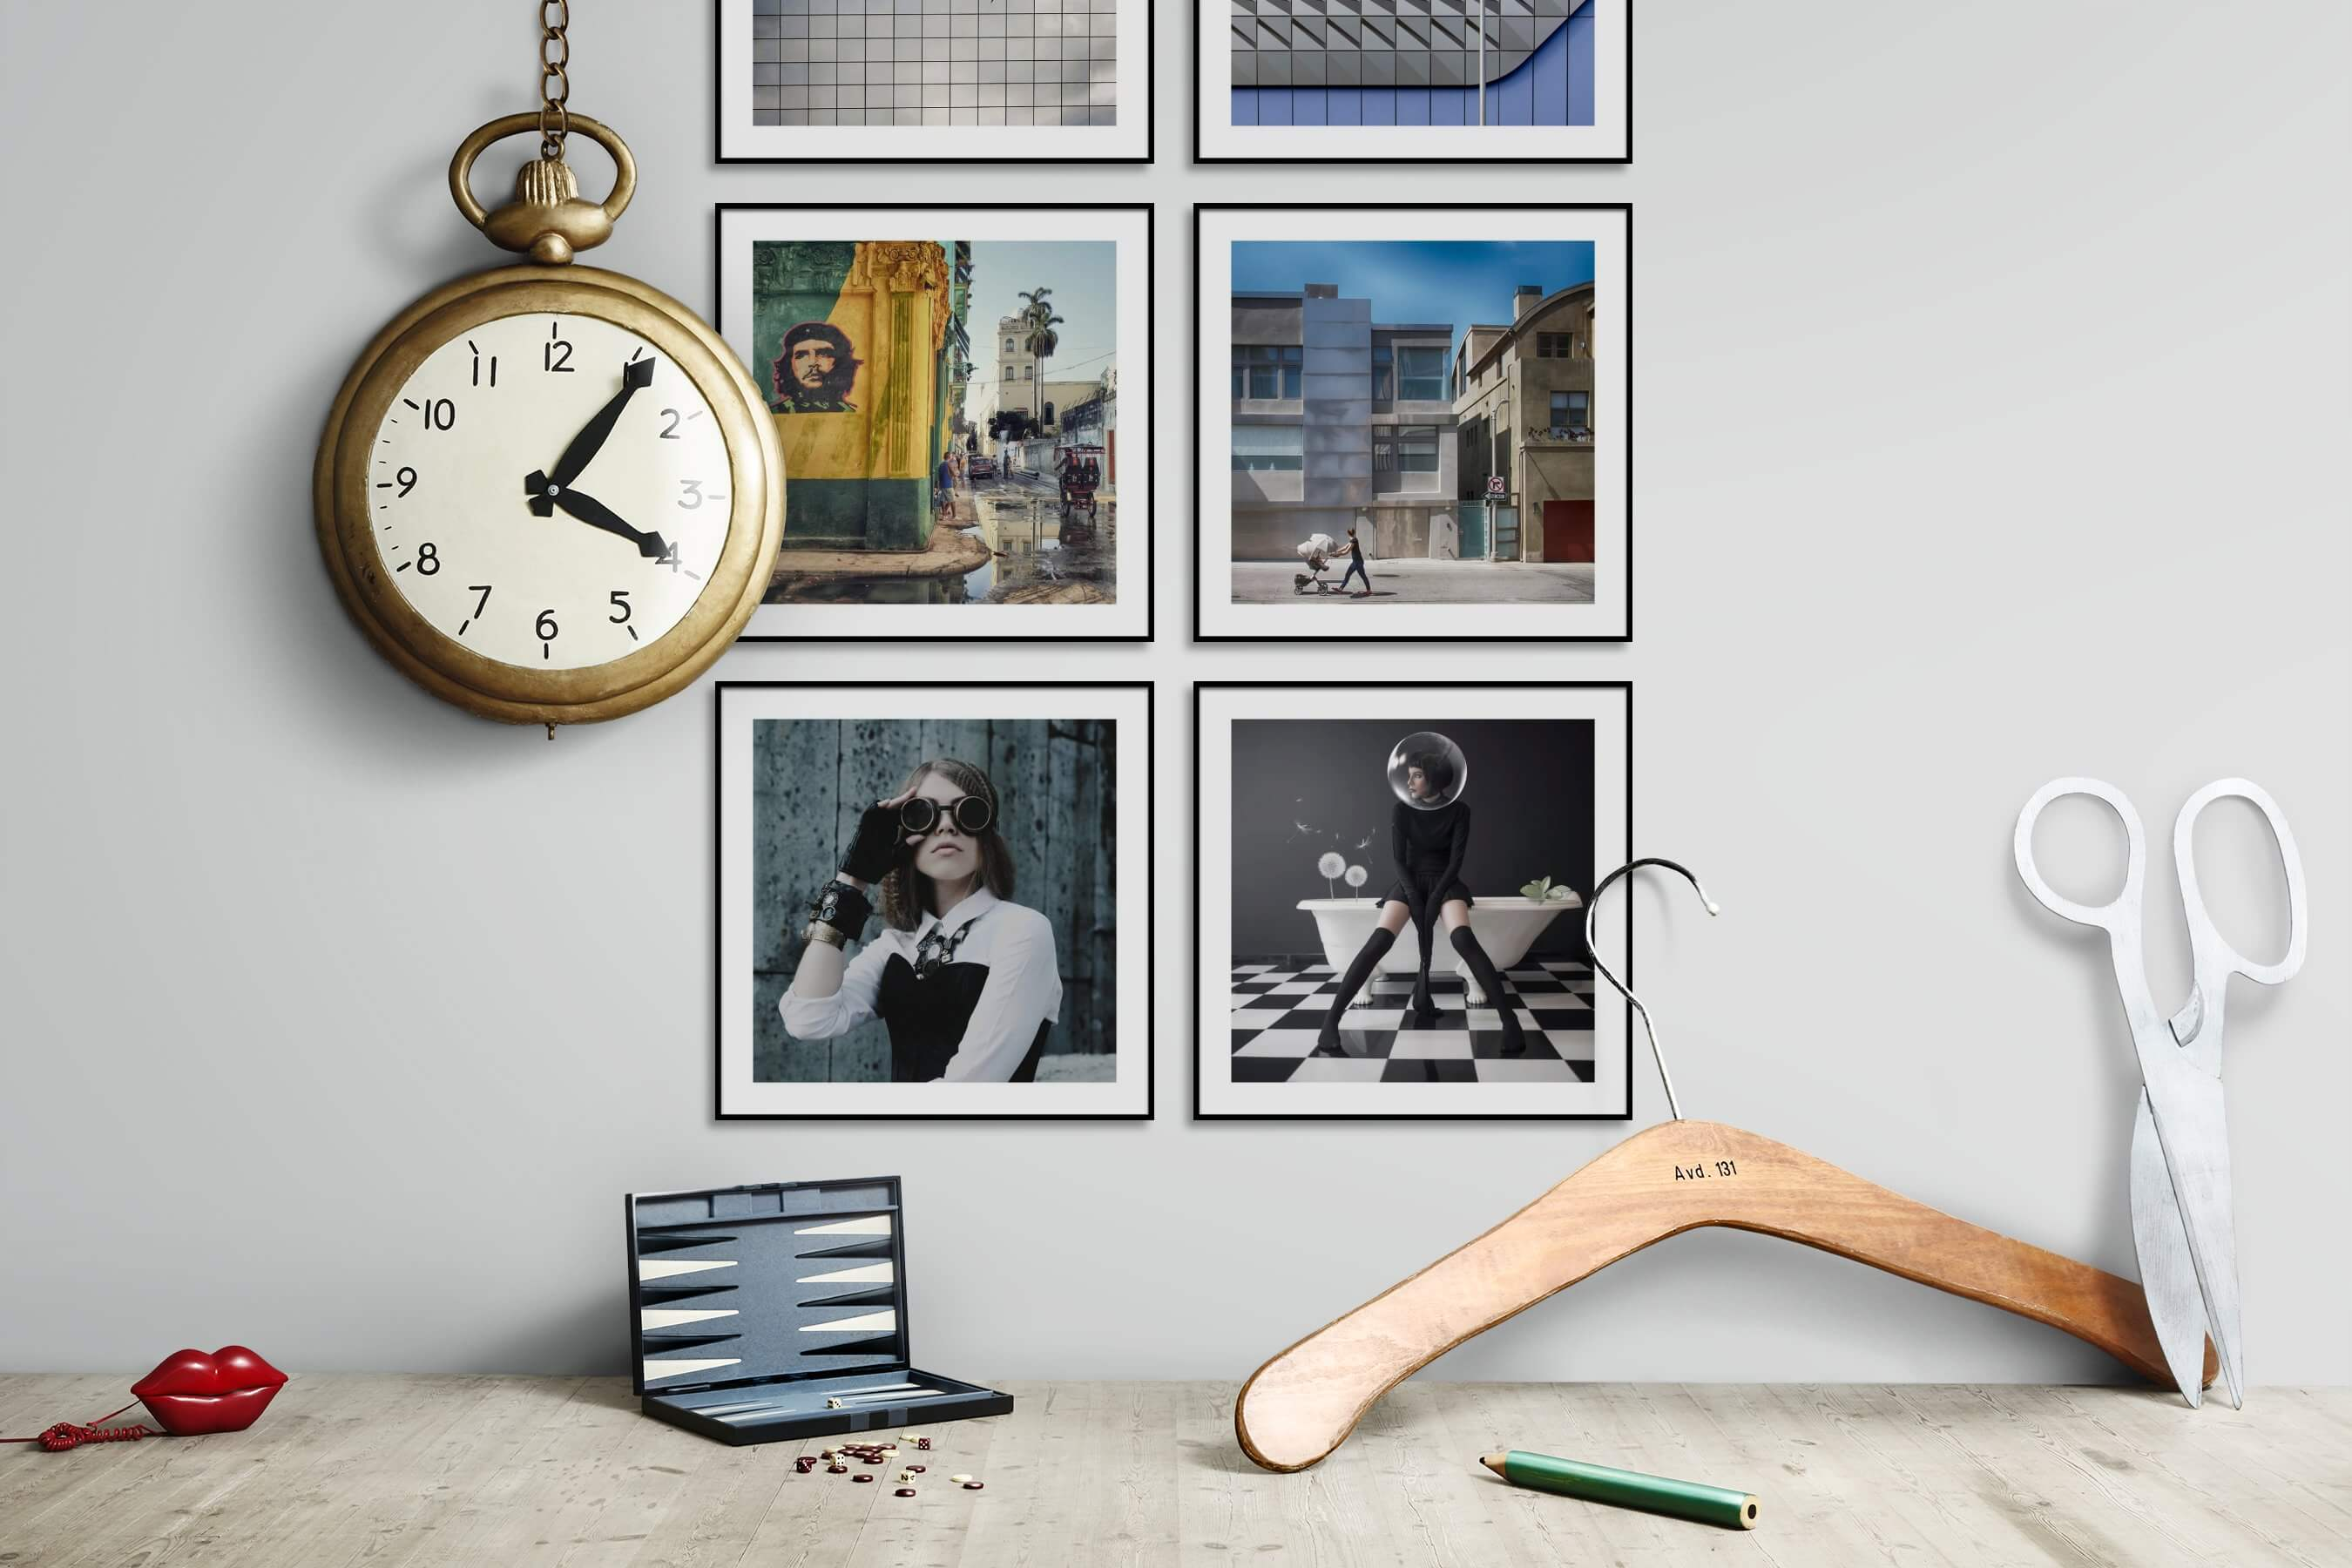 Gallery wall idea with six framed pictures arranged on a wall depicting For the Moderate, For the Maximalist, City Life, Vintage, Fashion & Beauty, and Artsy